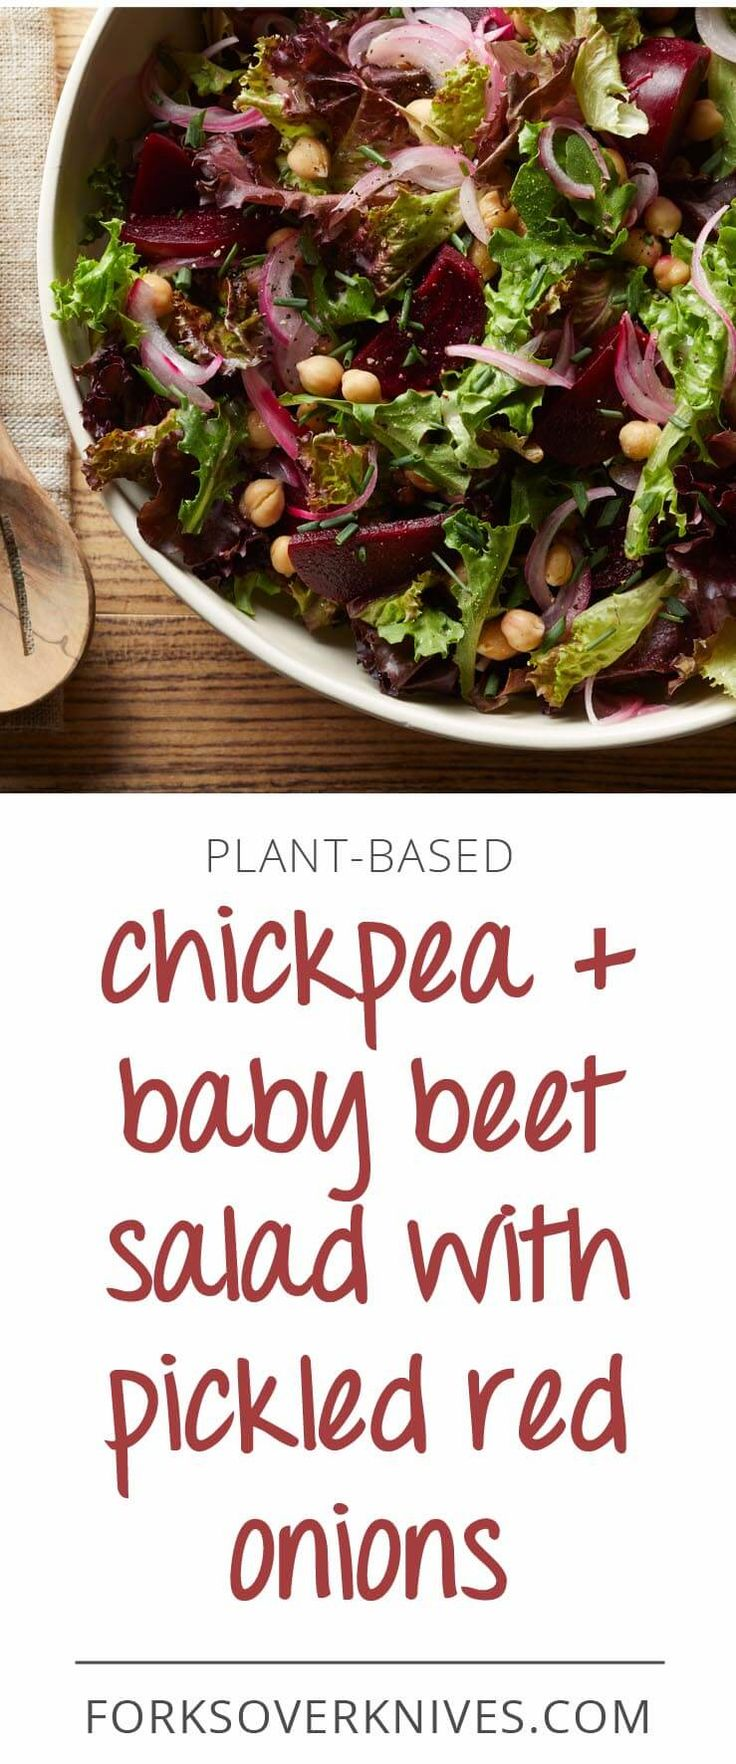 Chickpea and baby beet salad with pickled red onions